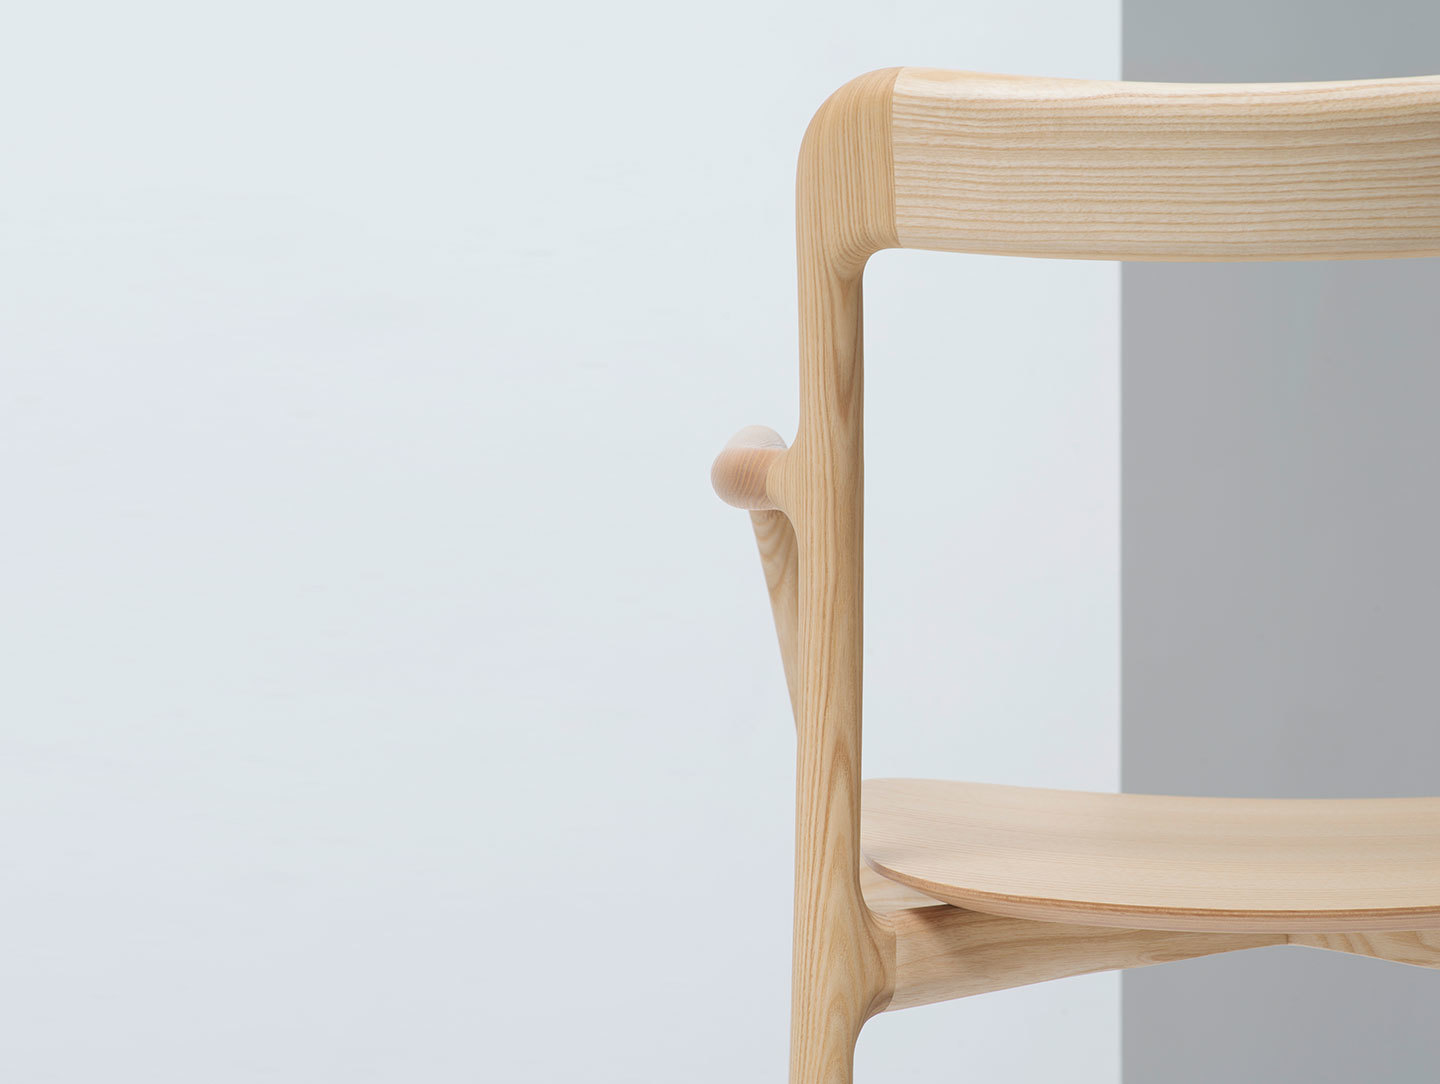 Mattiazzi Branca Chair Detail Sam Hecht Kim Colin